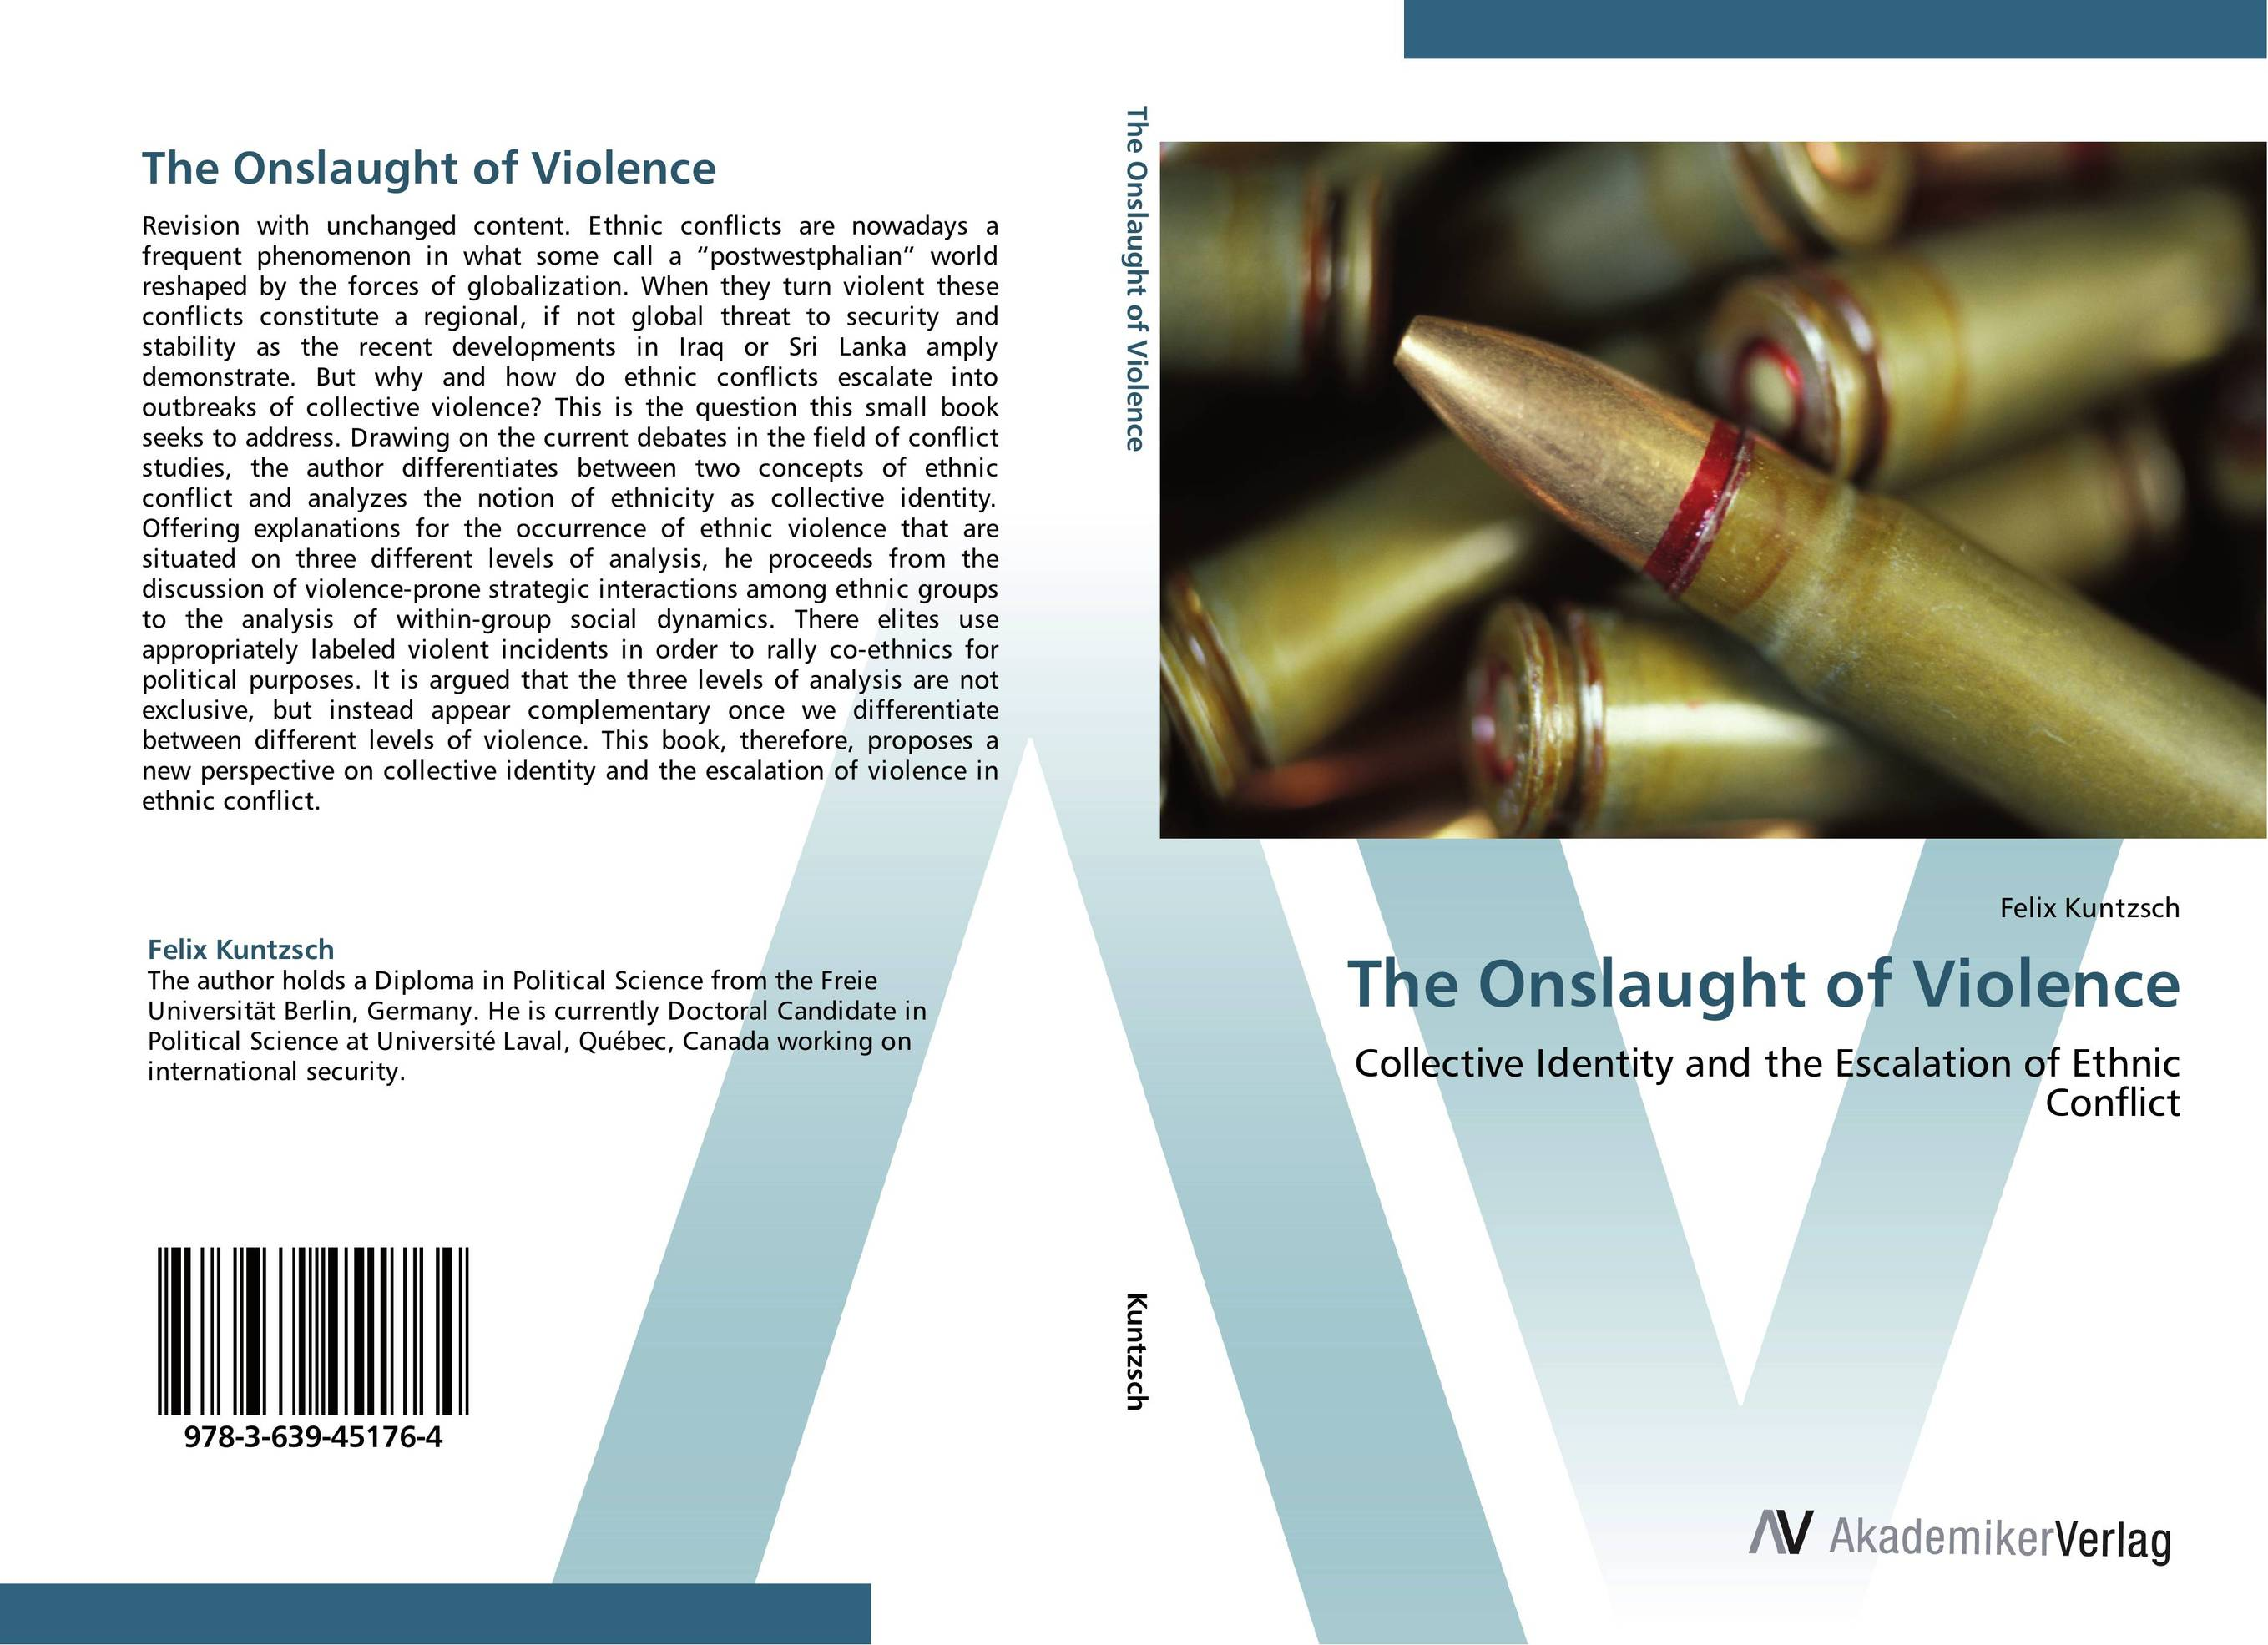 The Onslaught of Violence trans border ethnic hegemony and political conflict in africa